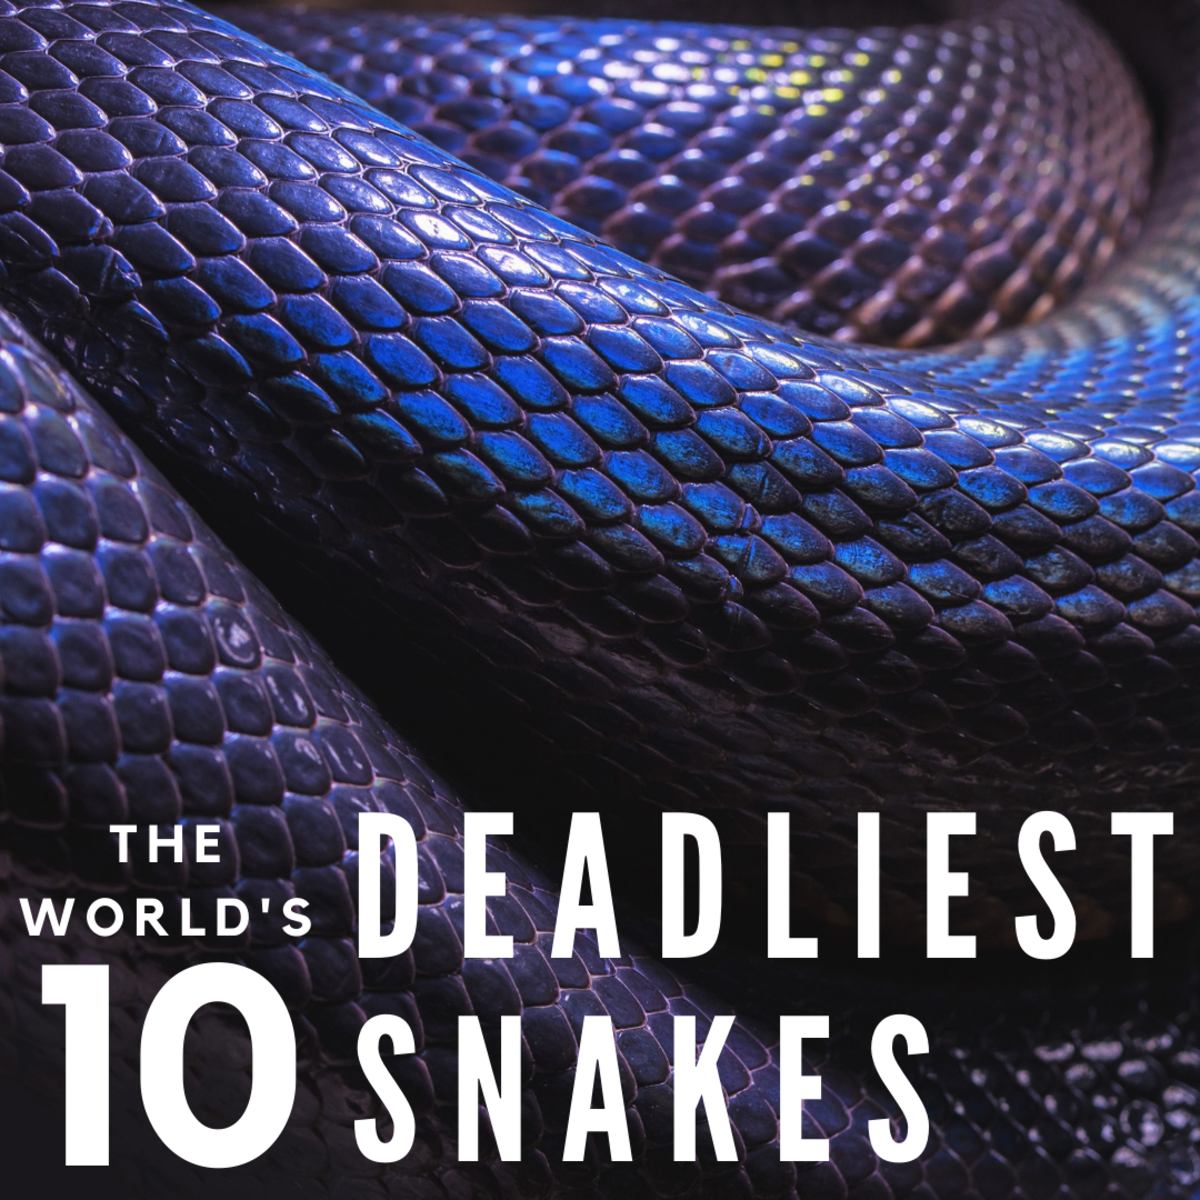 From the Death Adder to the Inland Taipan, here are 10 deadly snakes you never want to cross paths with!